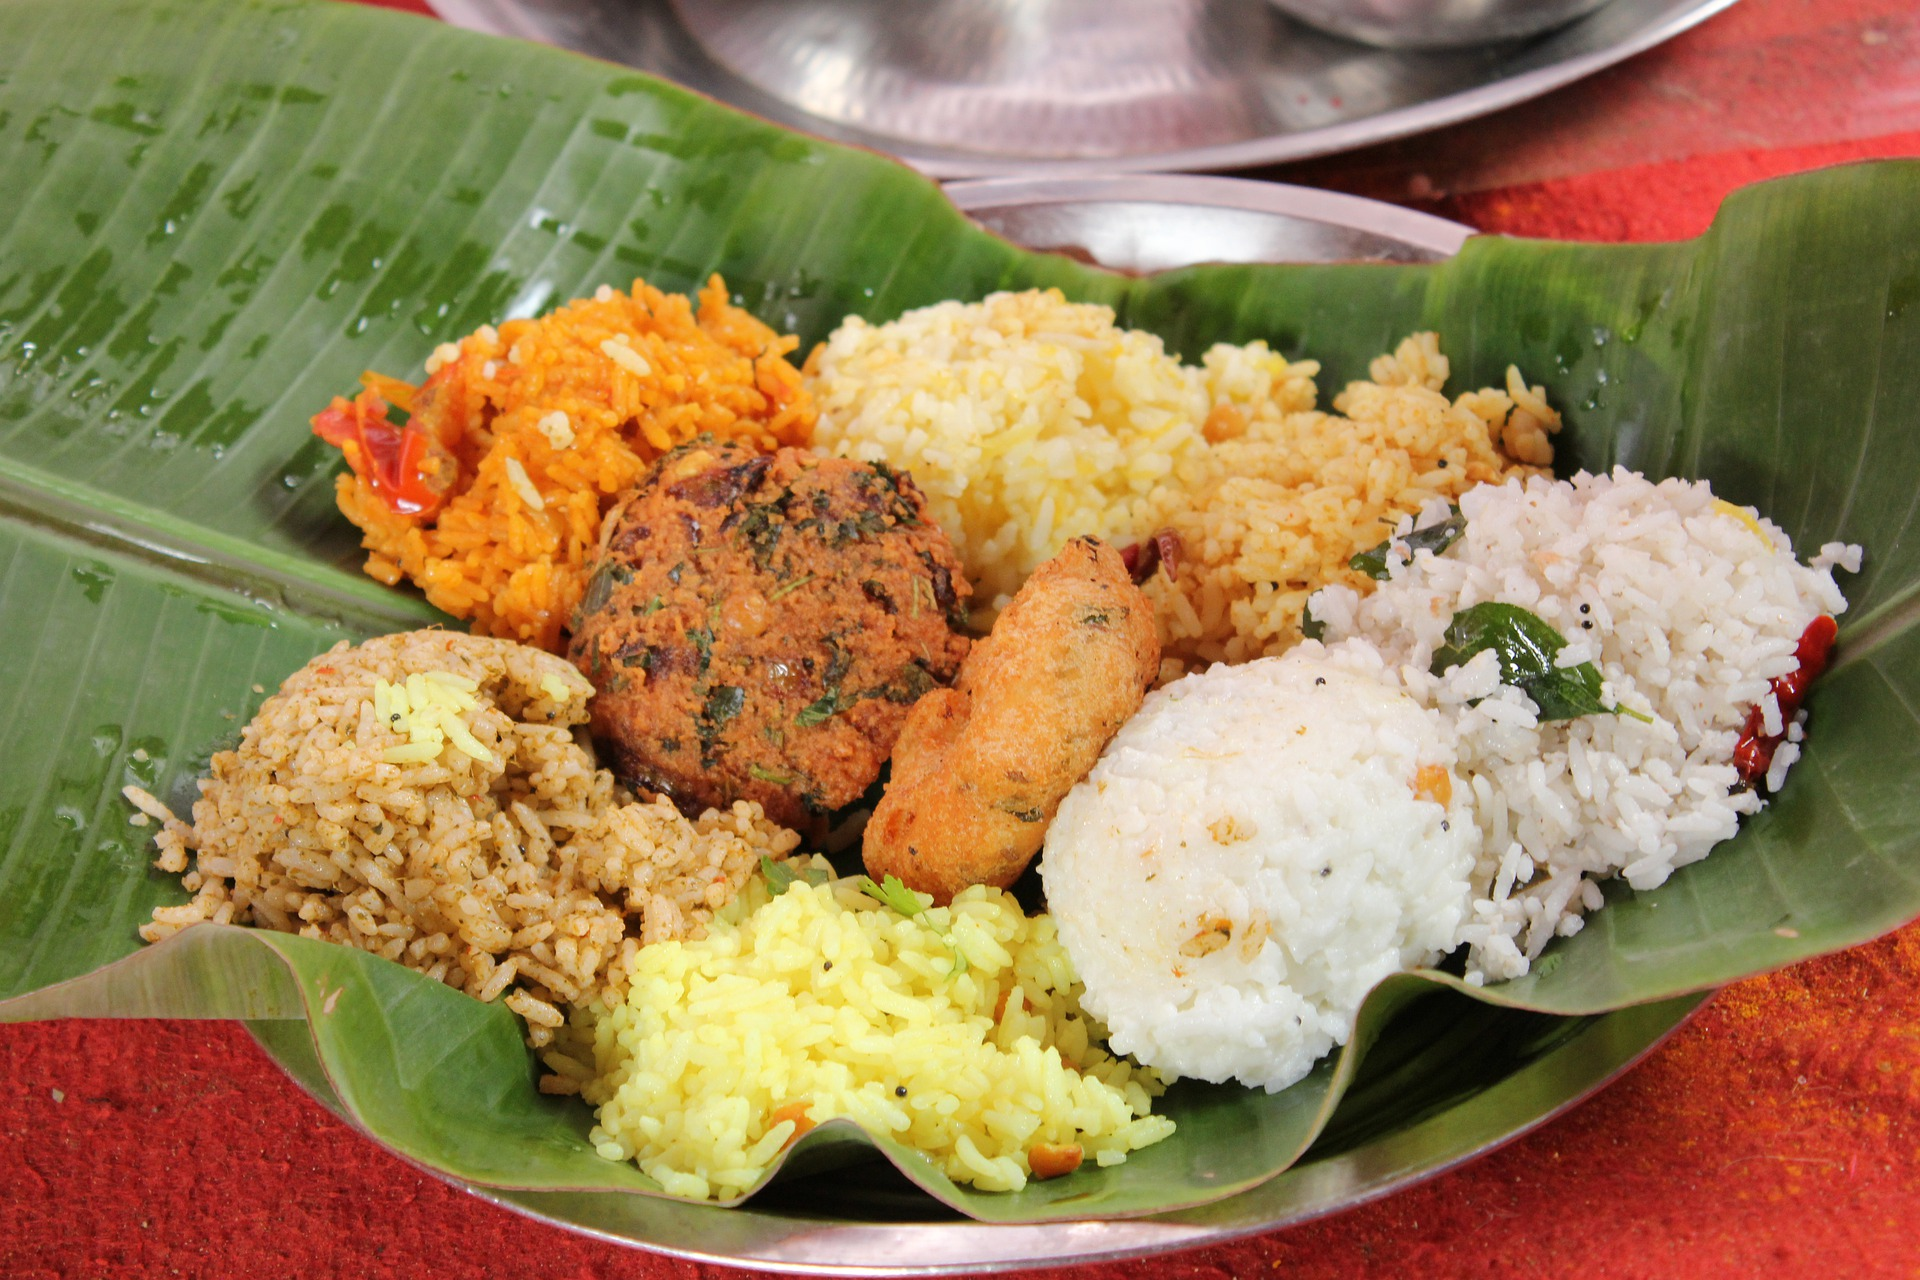 Why do we use banana Leaf or petals for meals?